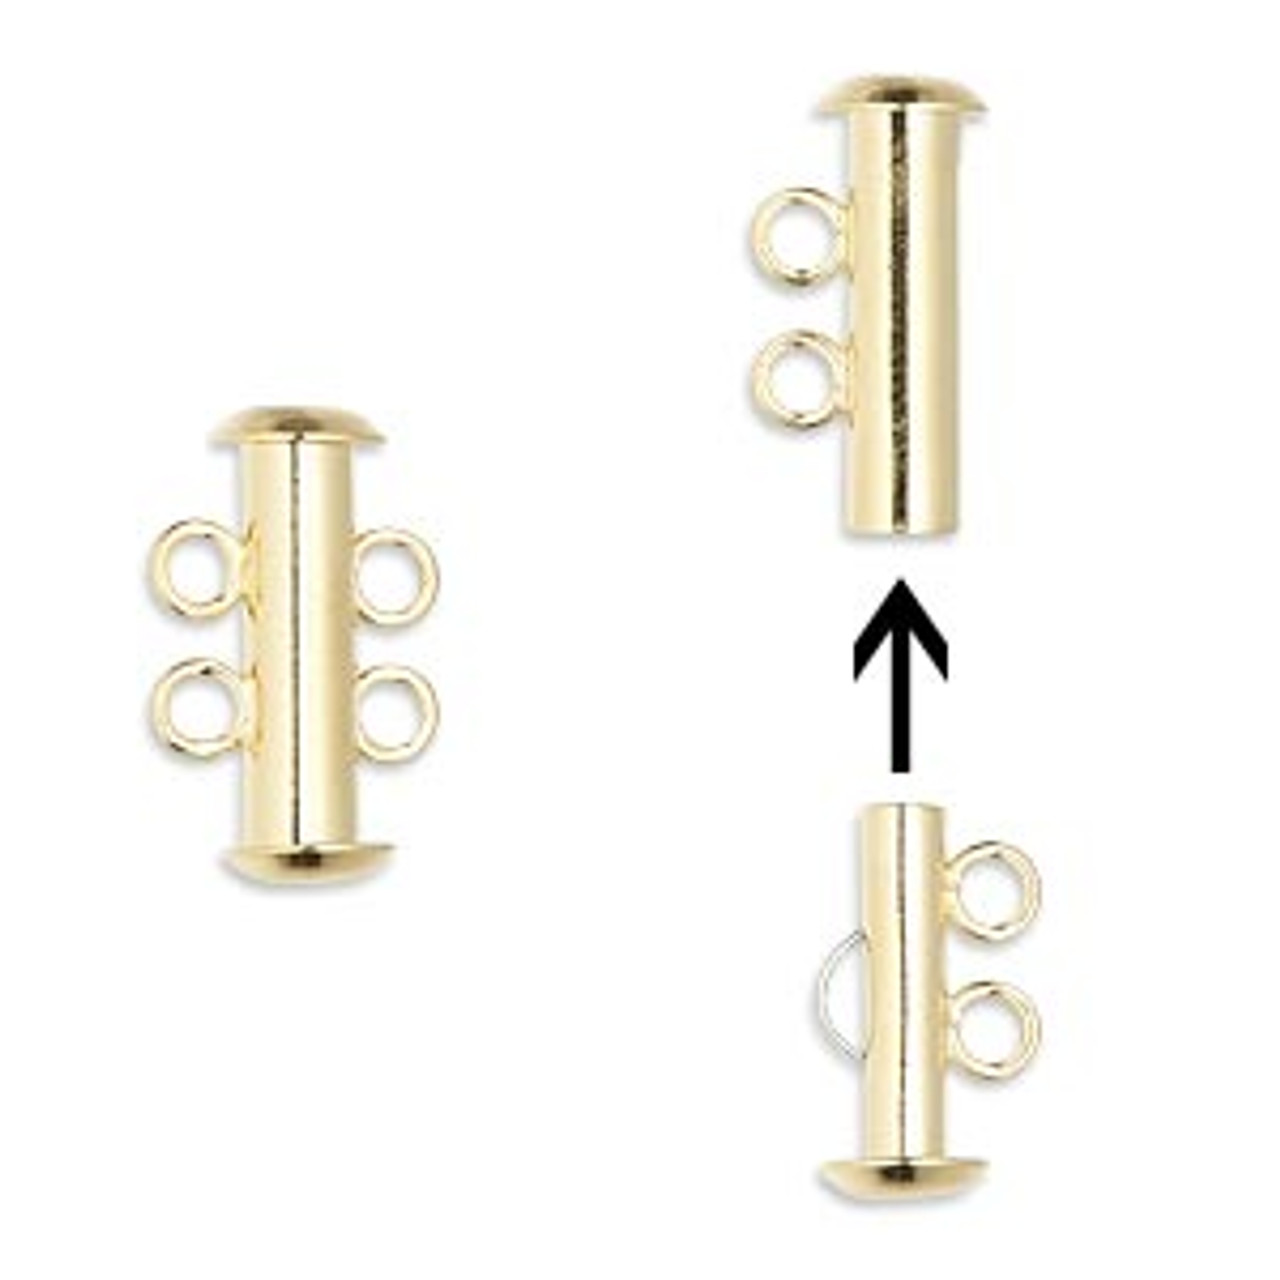 2 Strand Gold Plated Slide Clasp